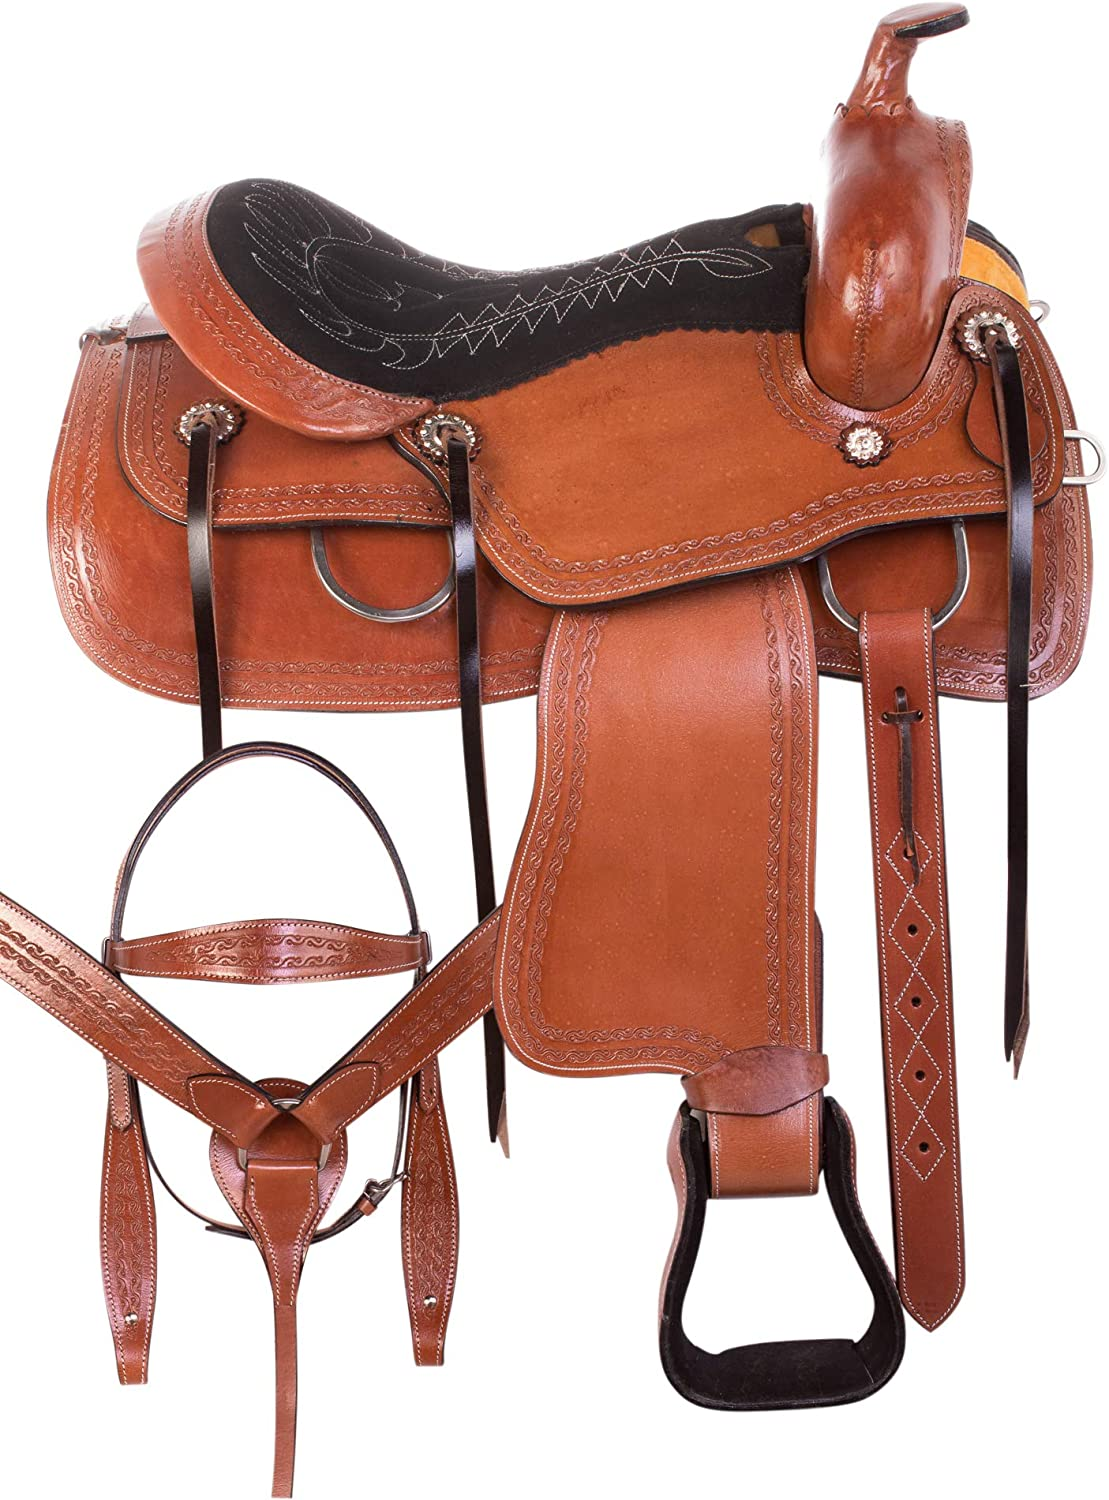 AceRugs Western Ranch Saddle 15 16 17 18 Premium Boarder Tooled Leather Comfy SEAT Pleasure Trail Horse Saddle TACK